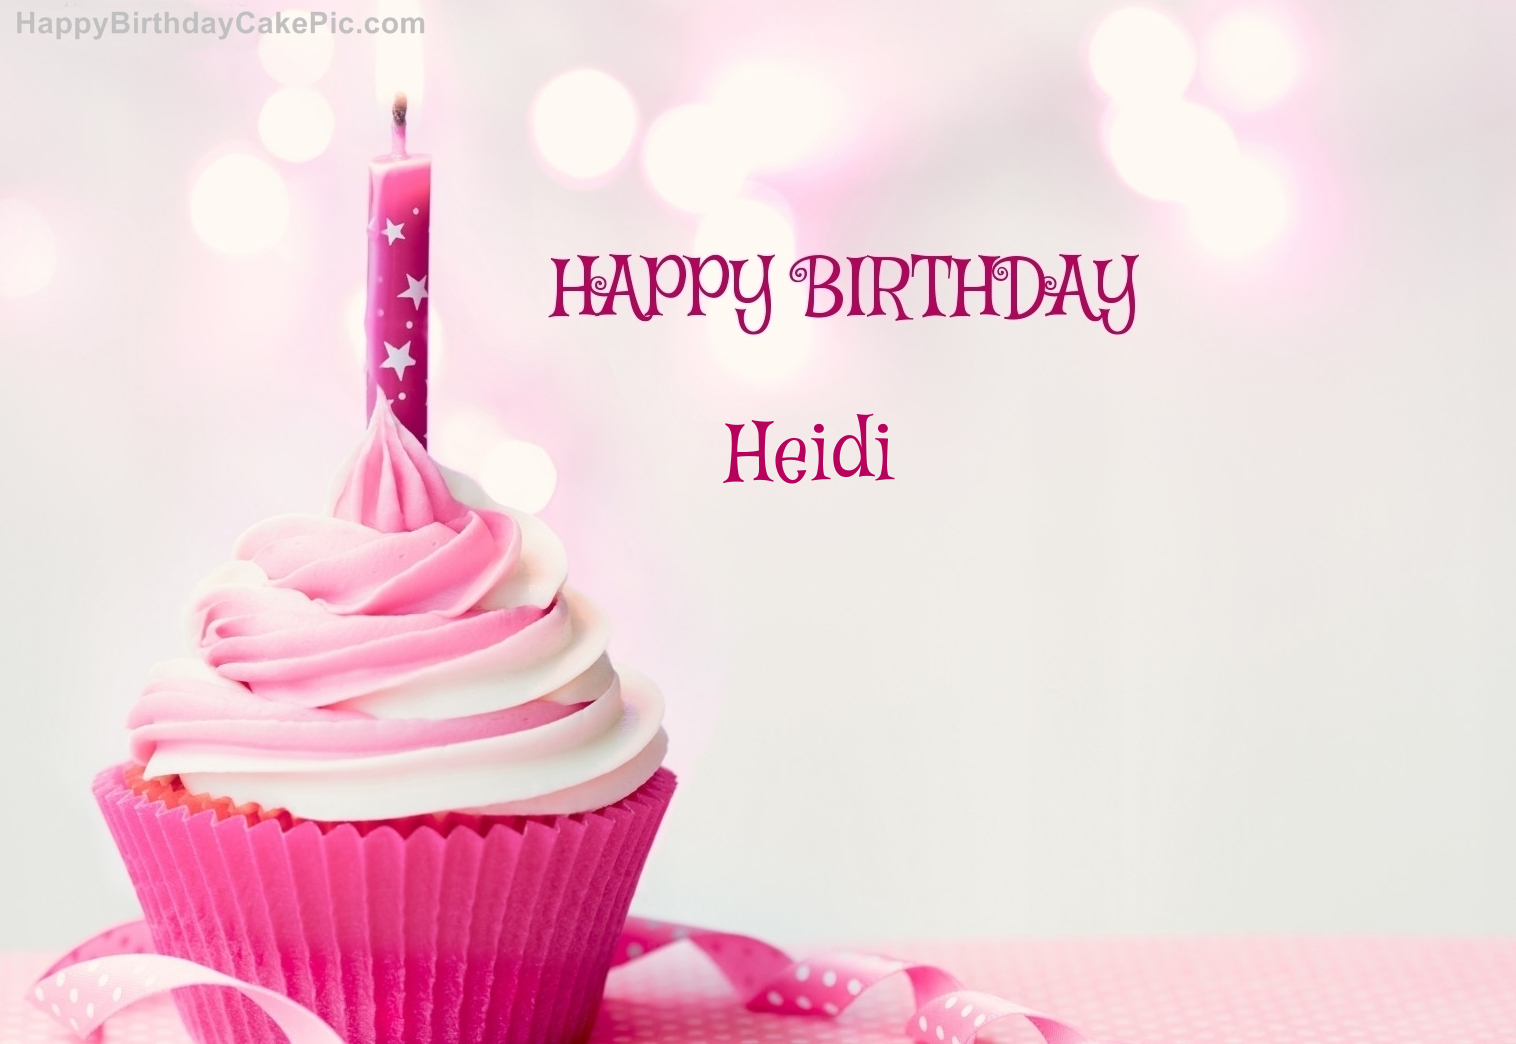 ️ Happy Birthday Cupcake Candle Pink Cake For Heidi